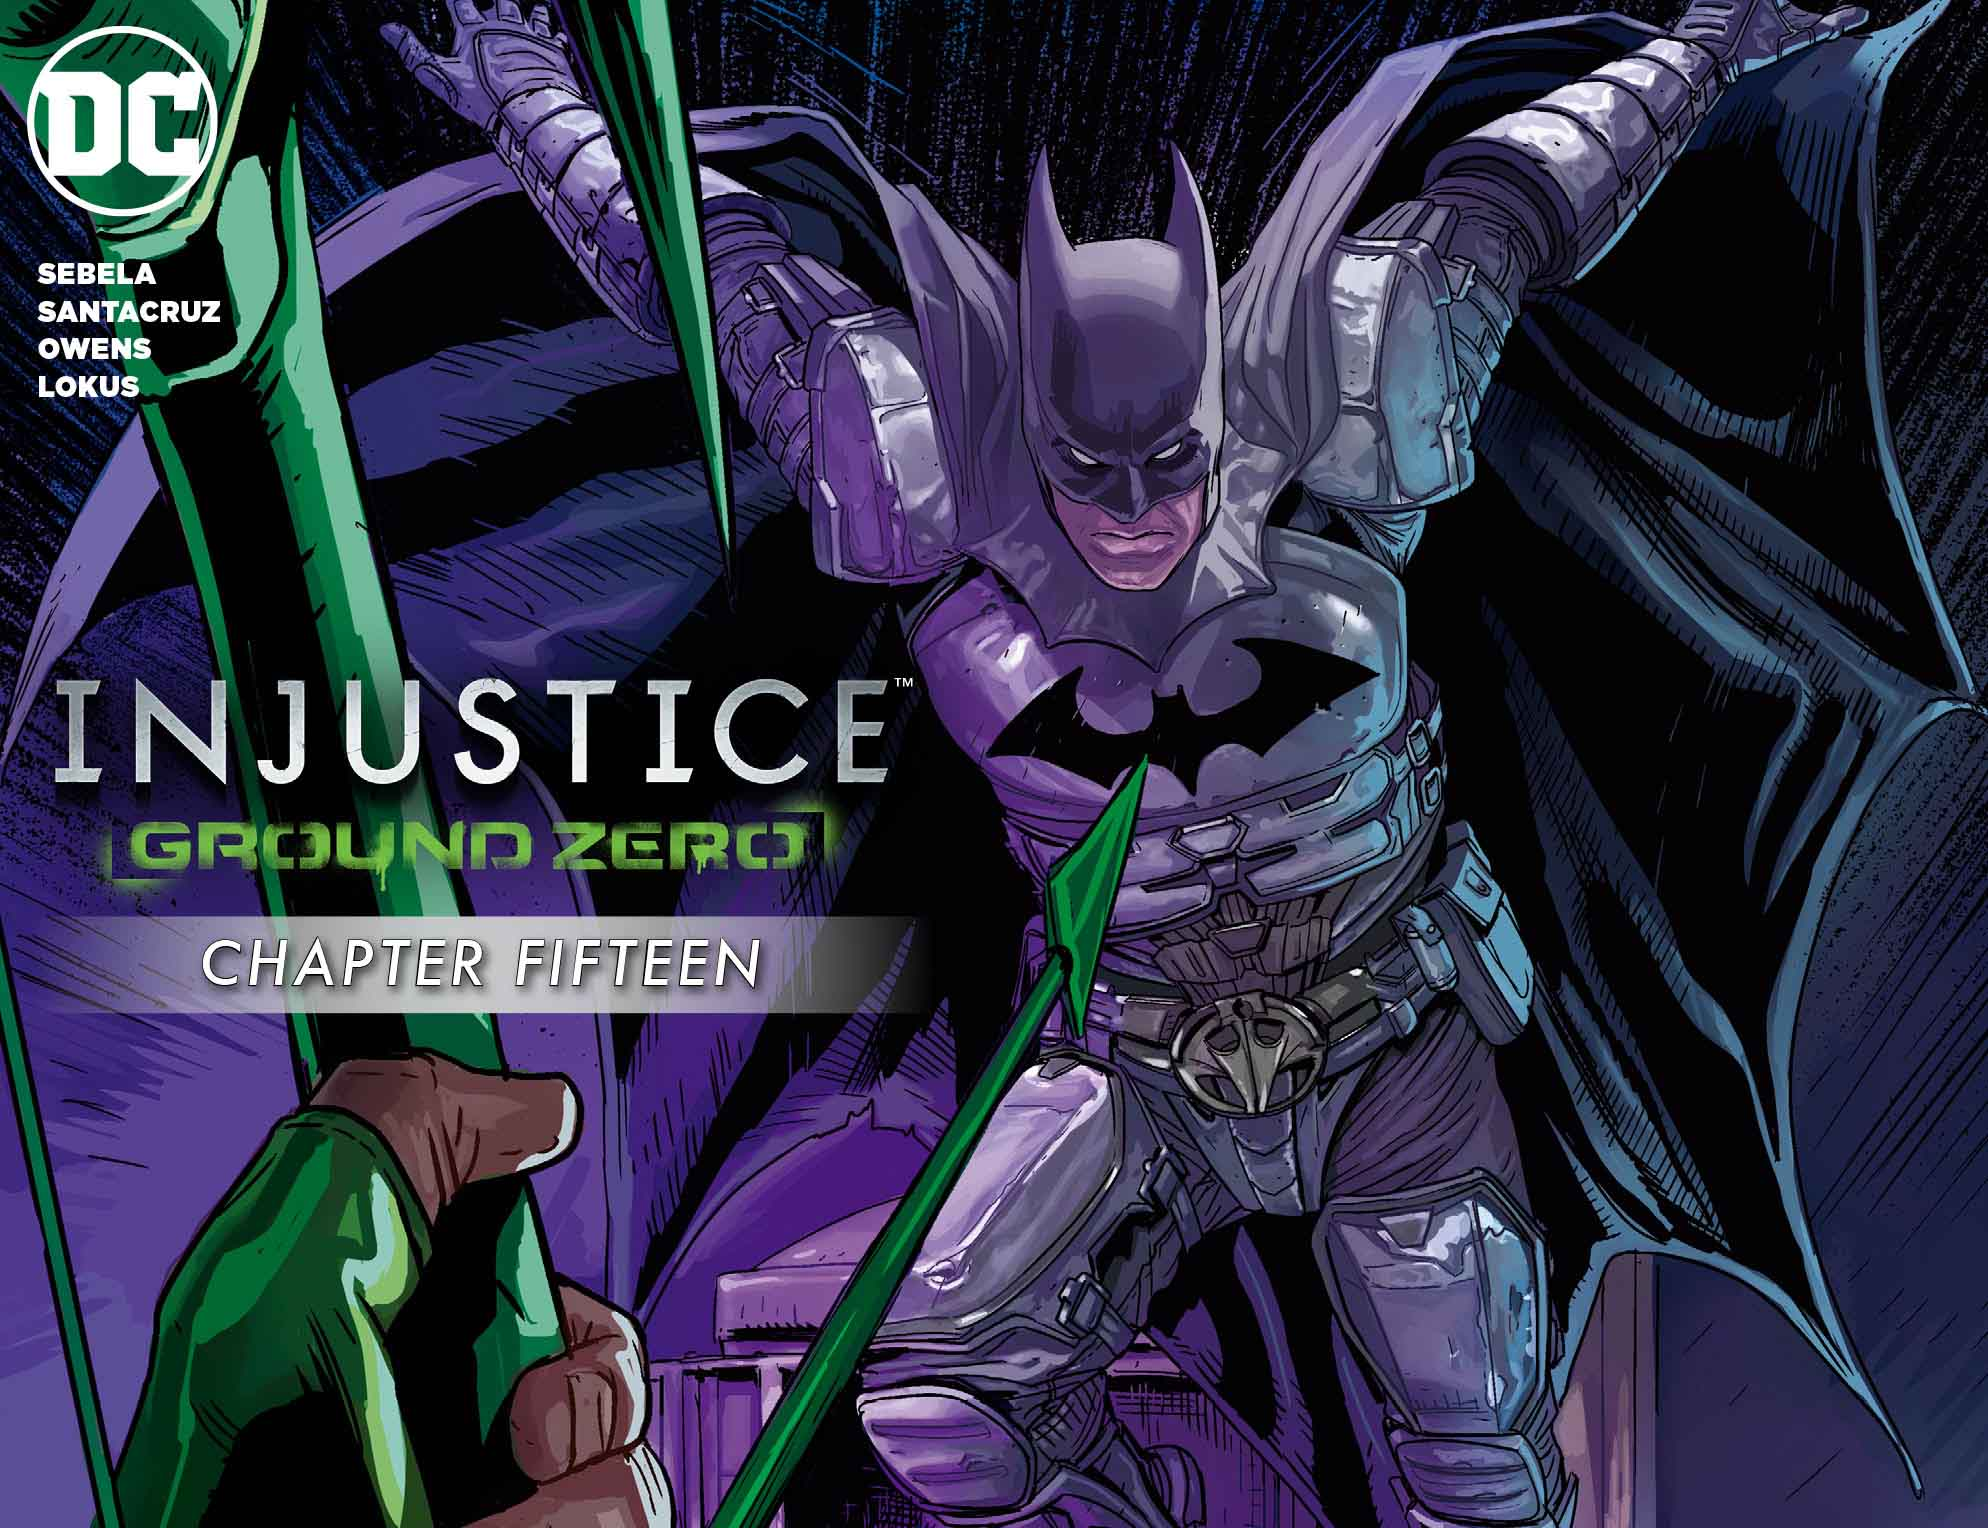 Injustice: Ground Zero